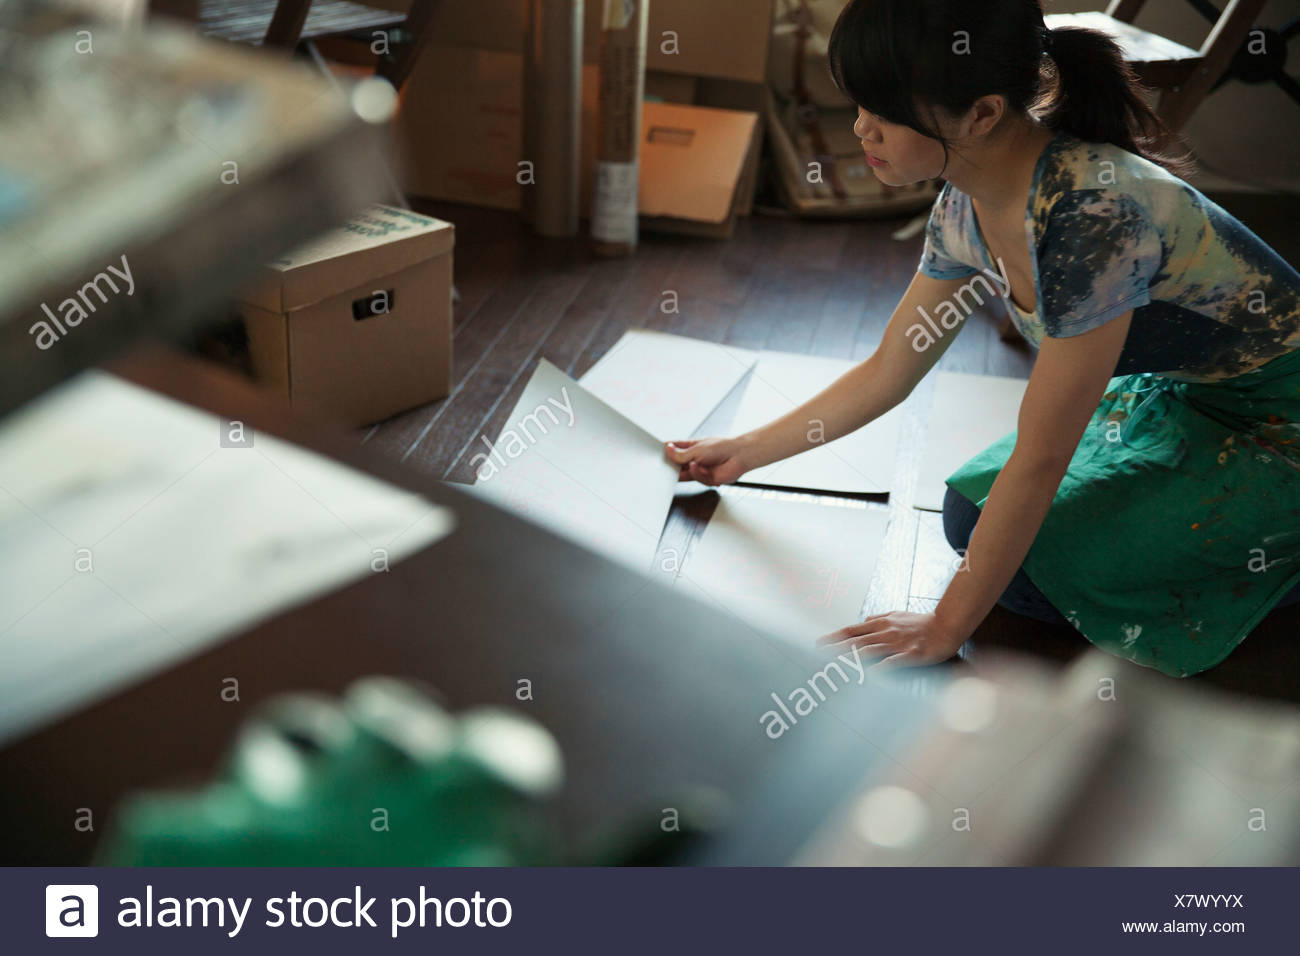 Female designer reviewing prints on the floor - Stock Image